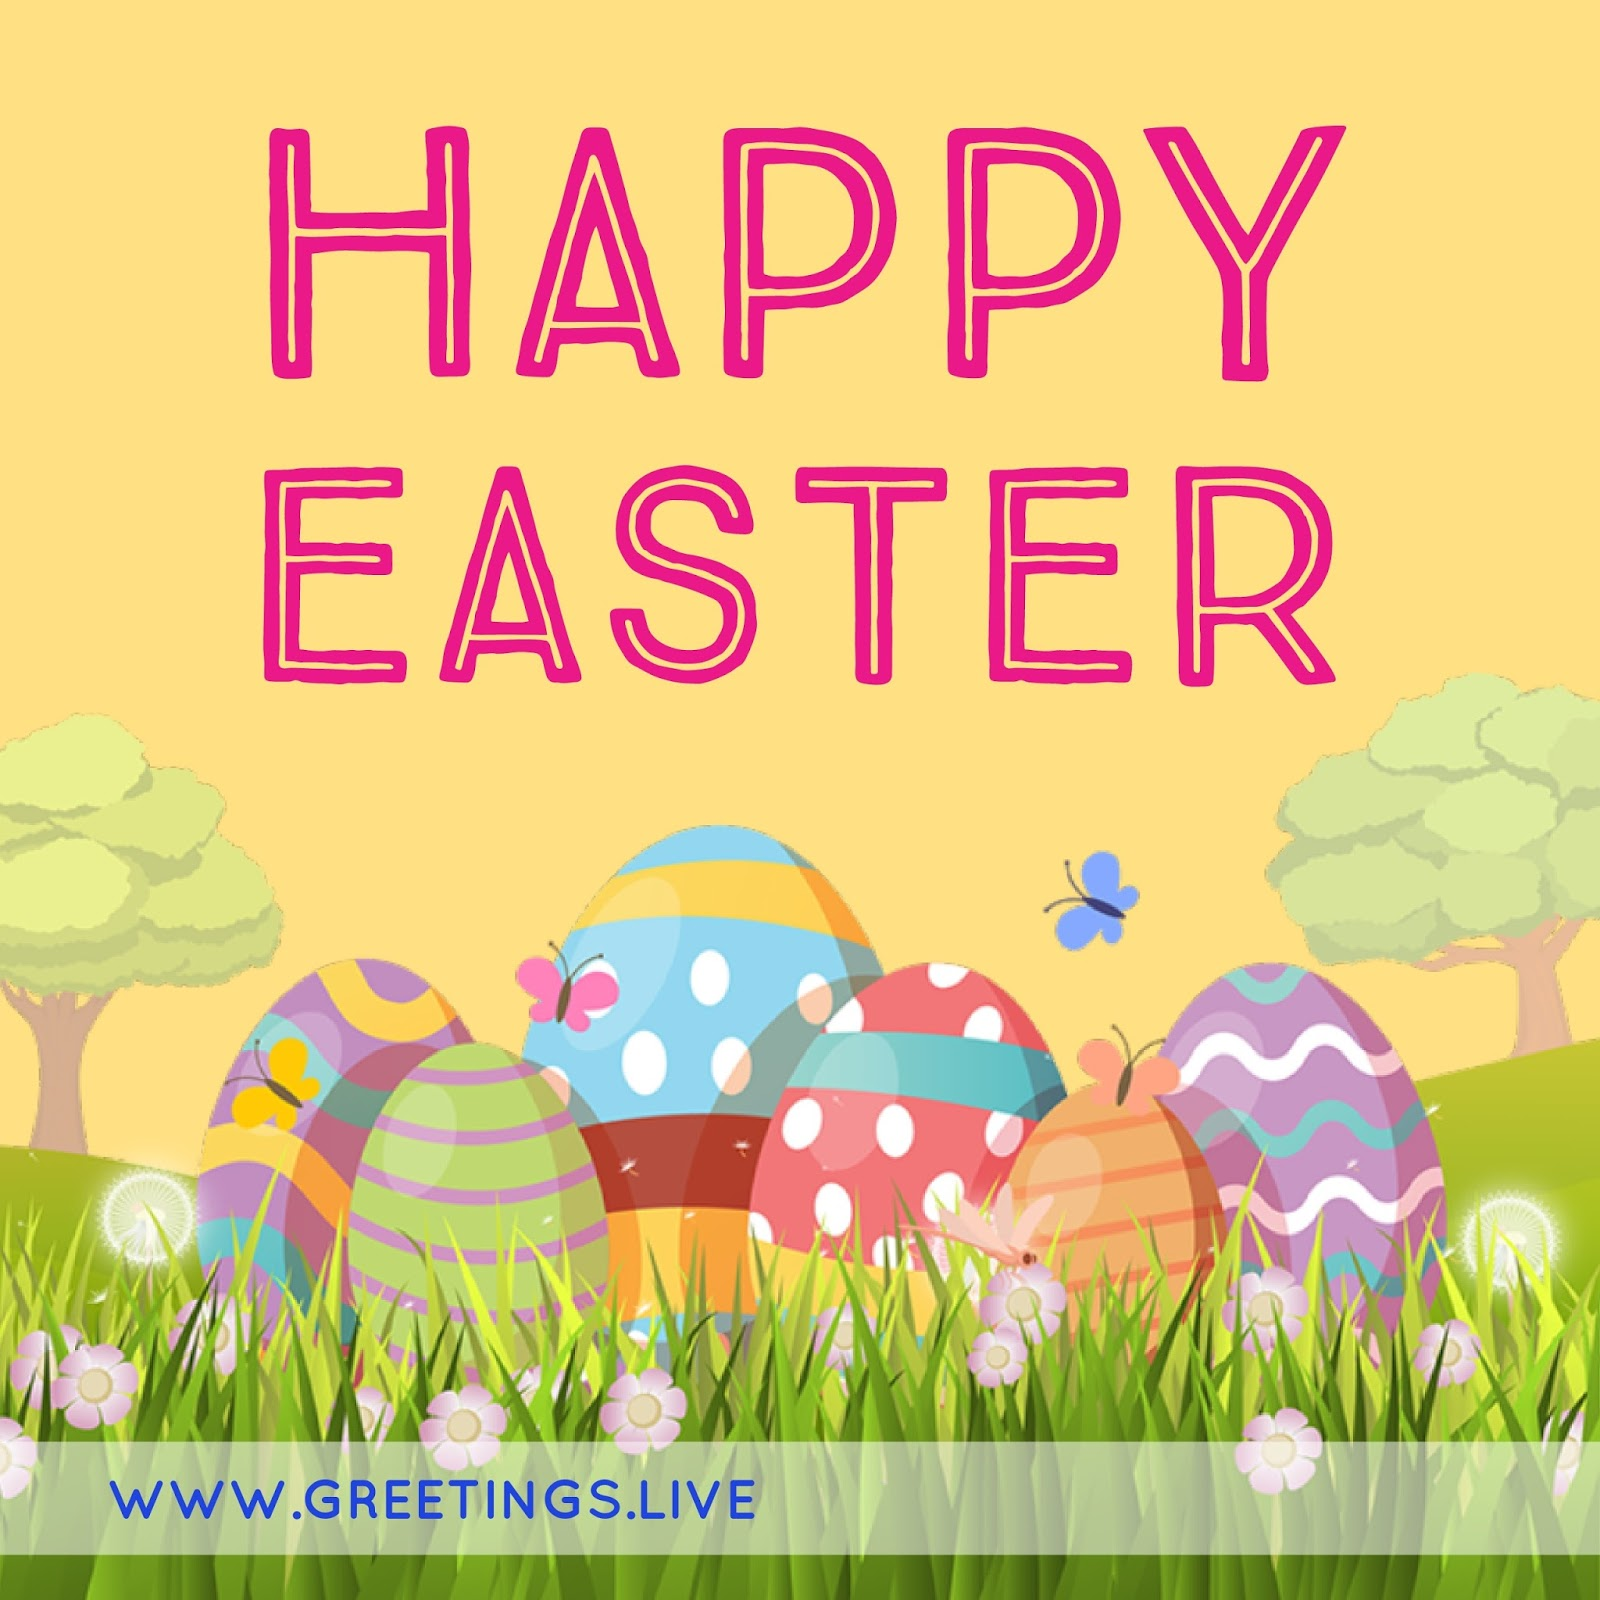 Greetingsve hd images love smile birthday wishes free download happy easter festival eggs wishes hd images kristyandbryce Images